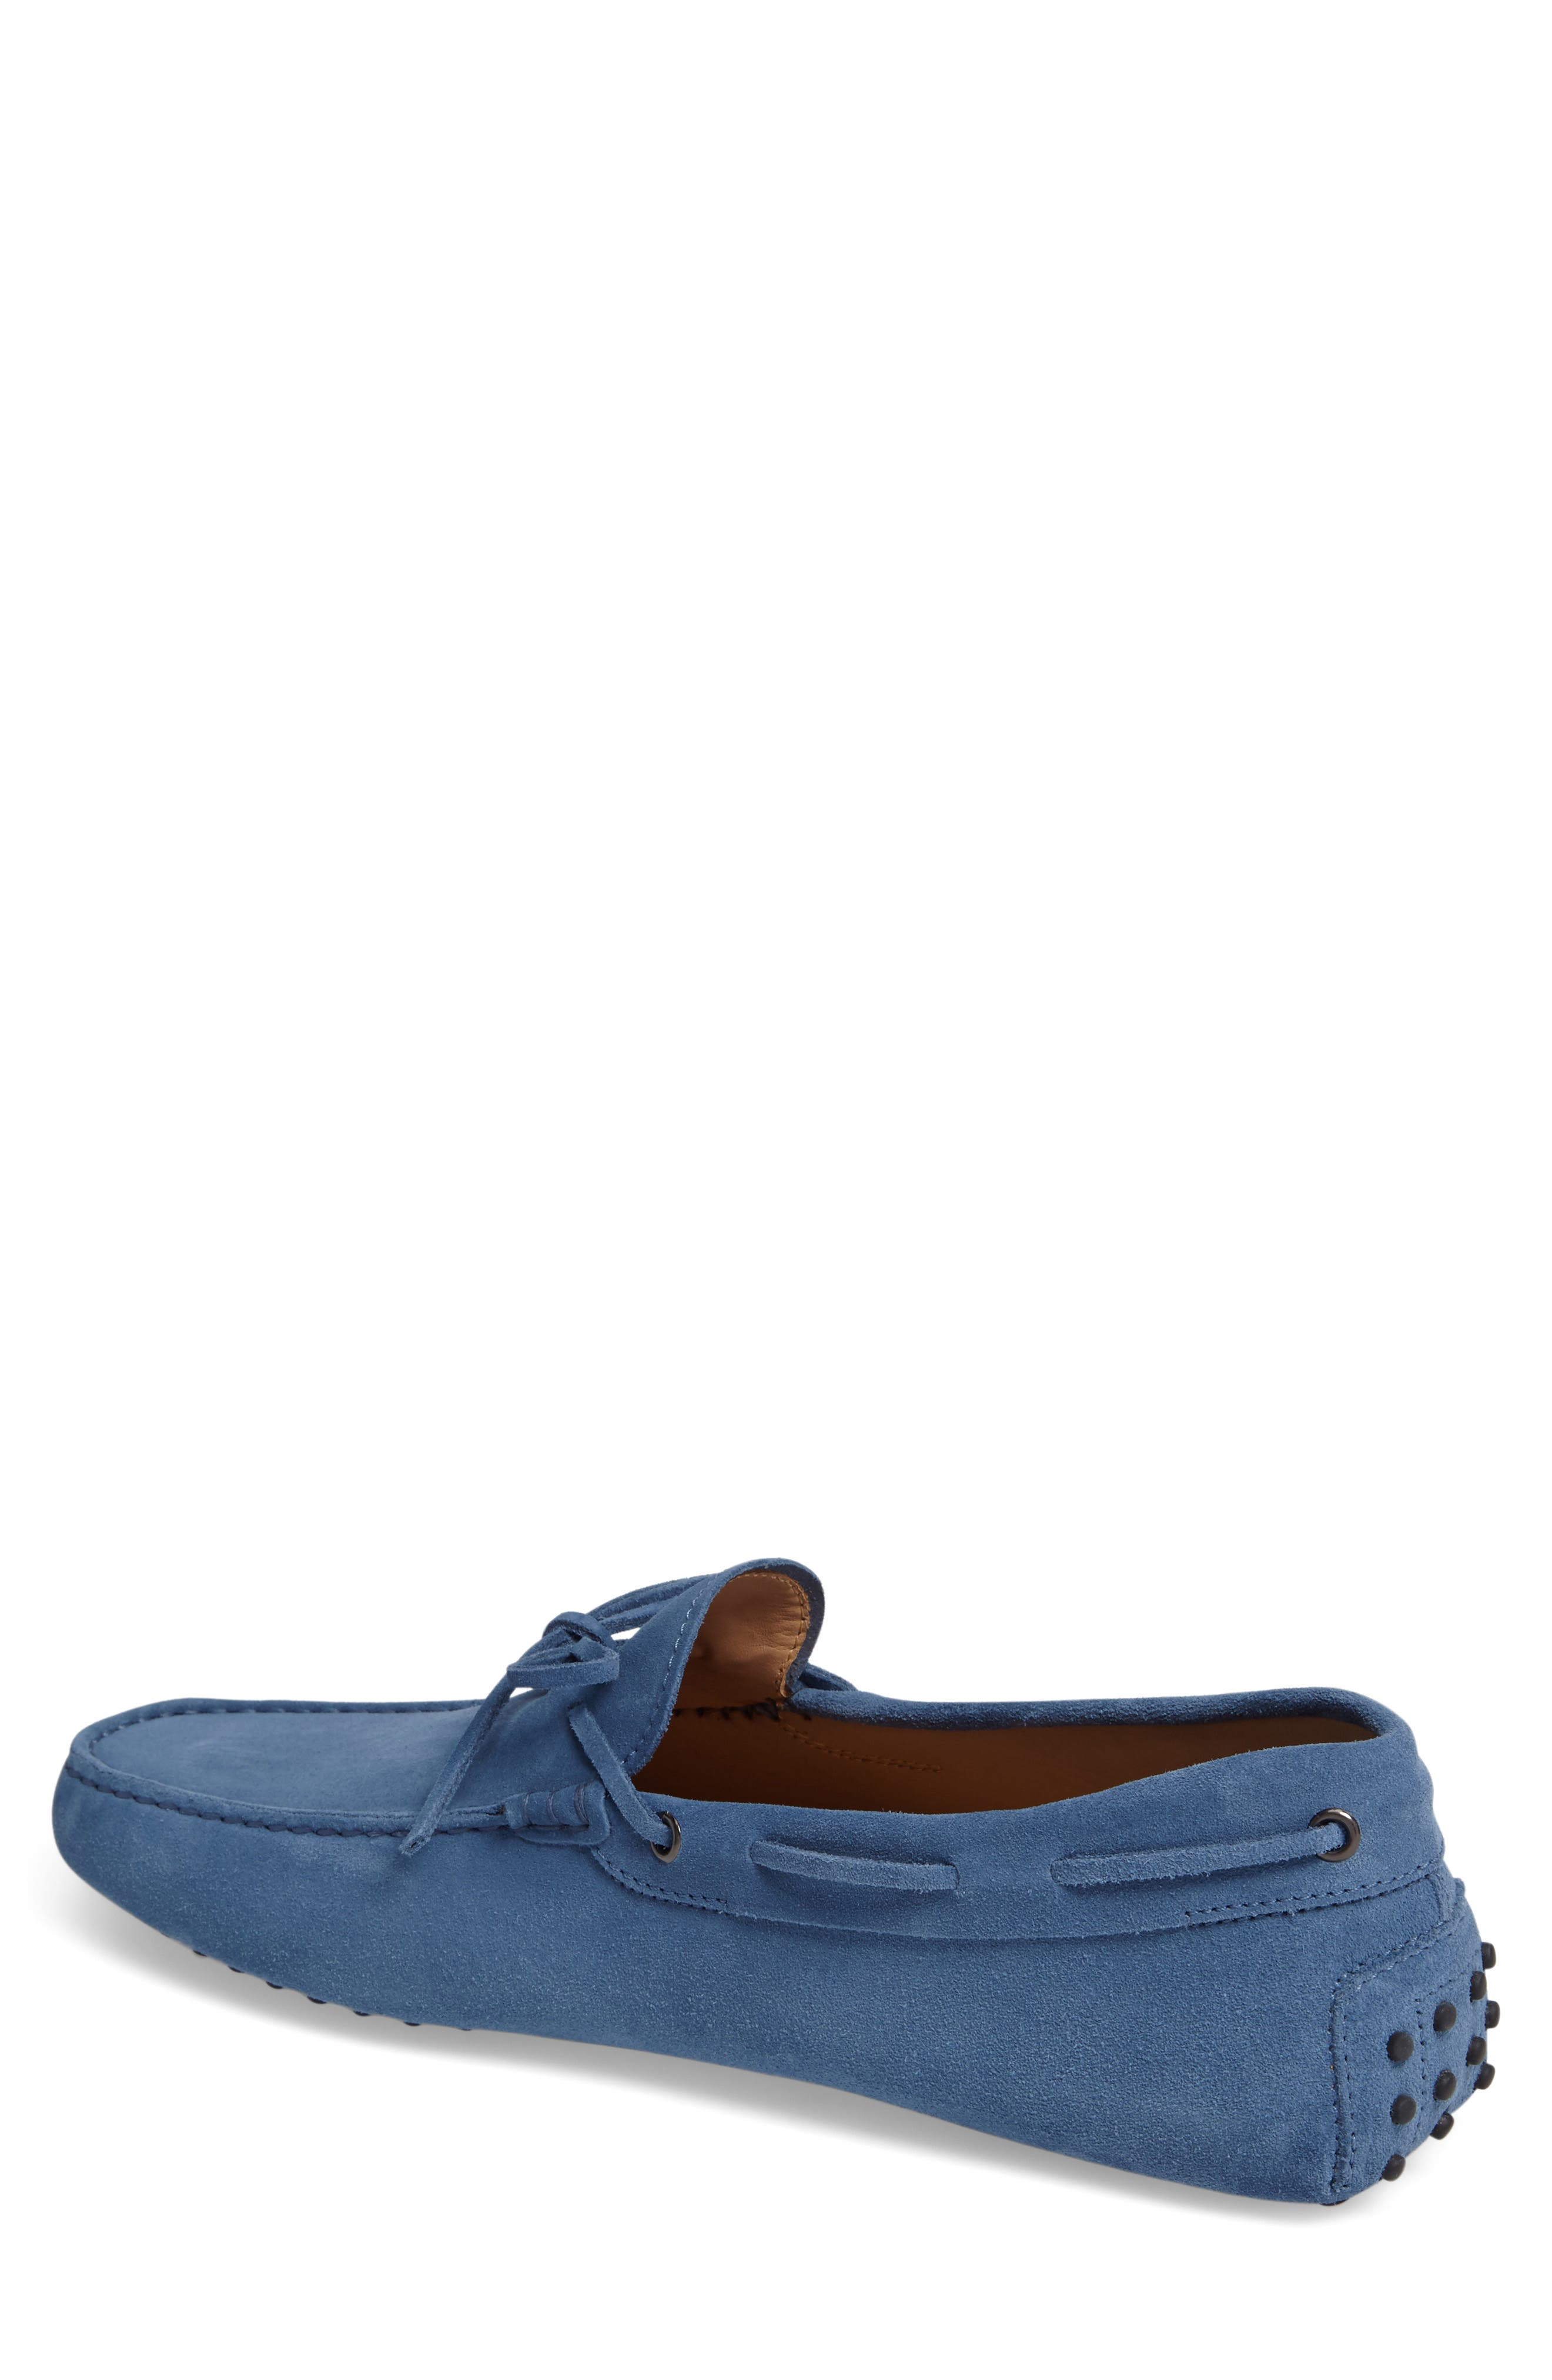 Gommini Tie Front Driving Moccasin,                             Alternate thumbnail 37, color,